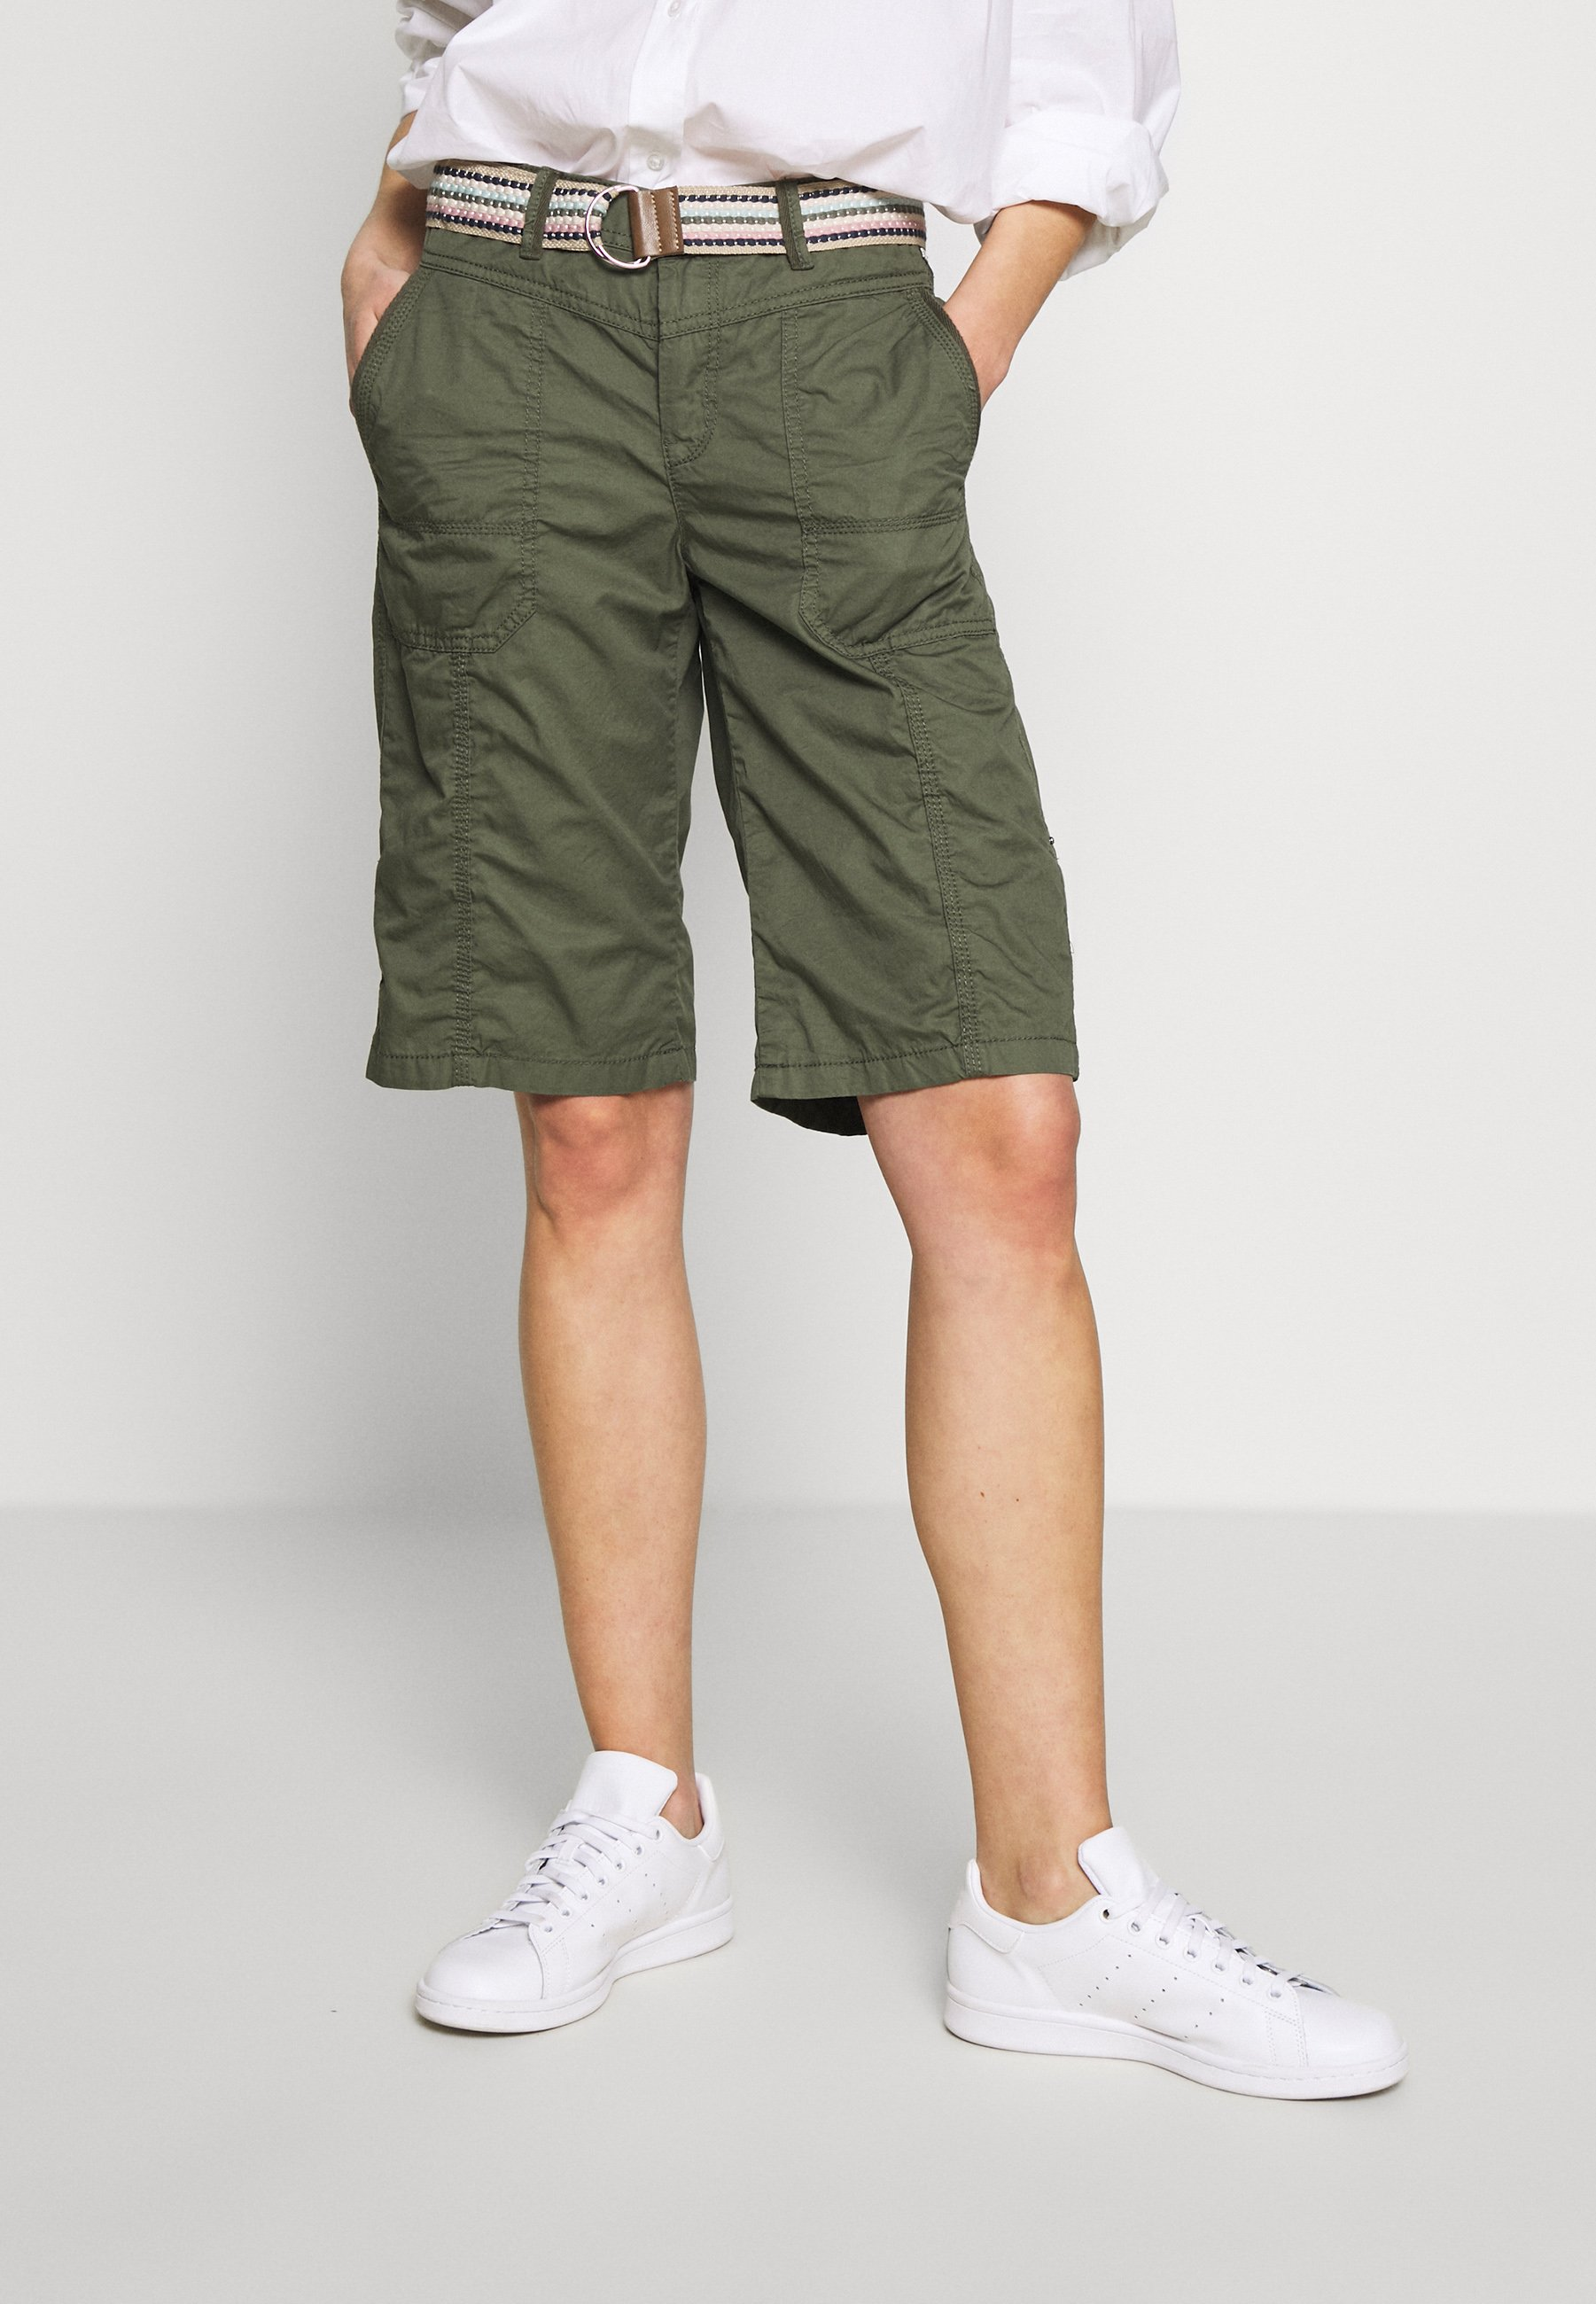 Esprit F PLAY BERMUDA - Szorty - khaki green